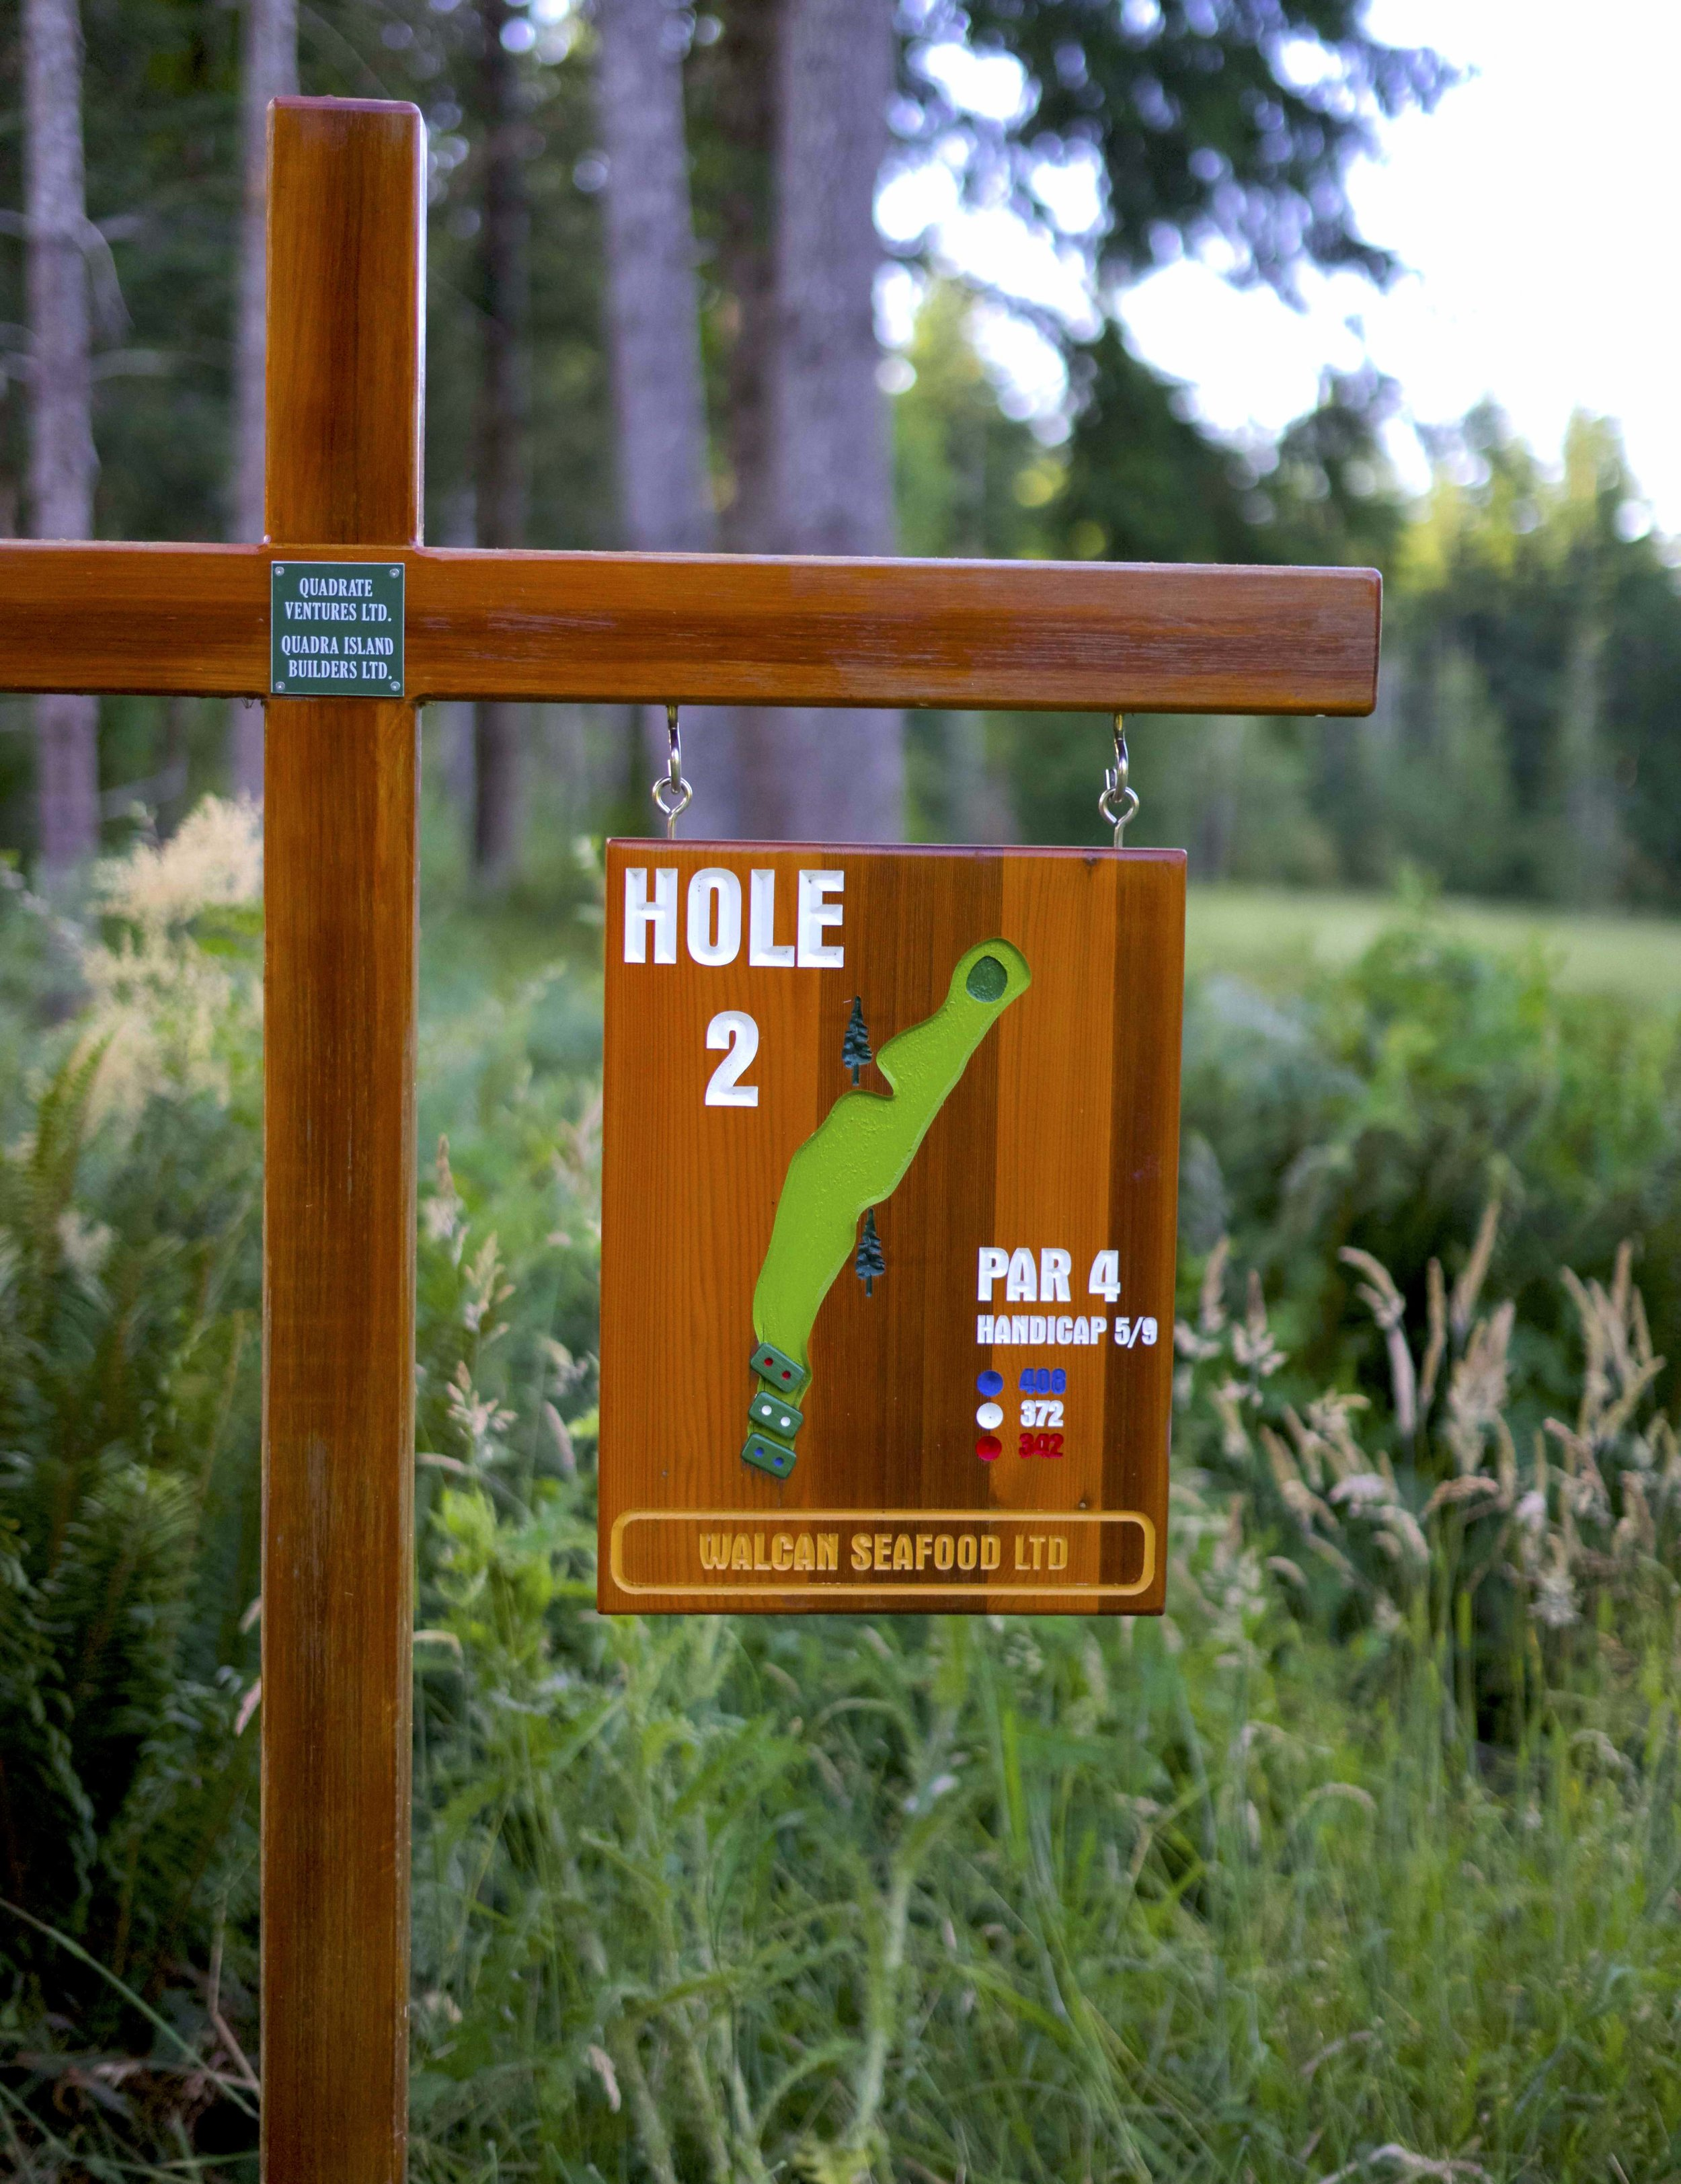 QuadraGolf_Hole2_sign_DSC00367.jpg